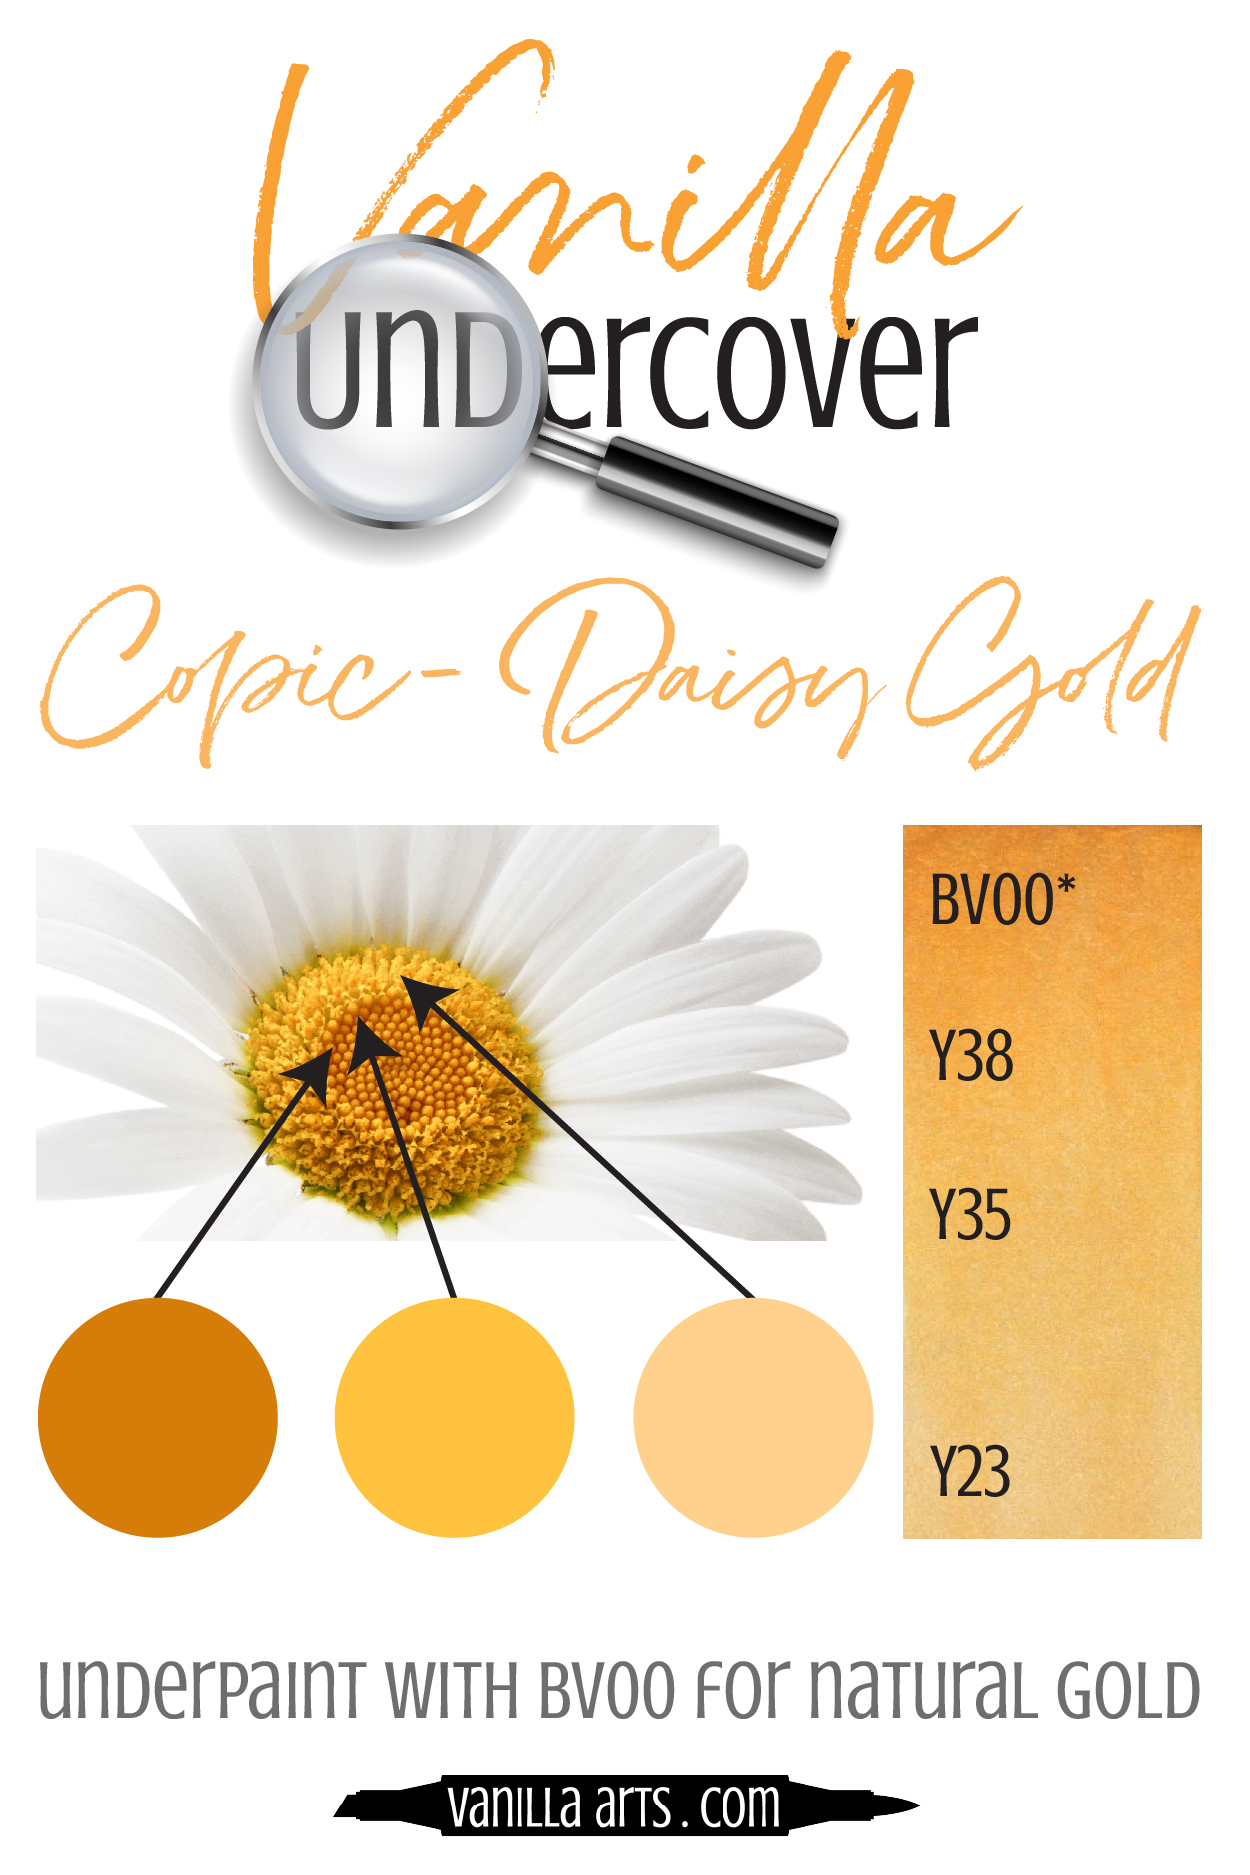 Add dimension and realism by underpainting with Copic Markers! Use BV00 underneath your Y (Yellow) blending combinations to capture the look of natural Gold.   VanillaArts.com   #copicmarker #realisticcoloring #underpainting